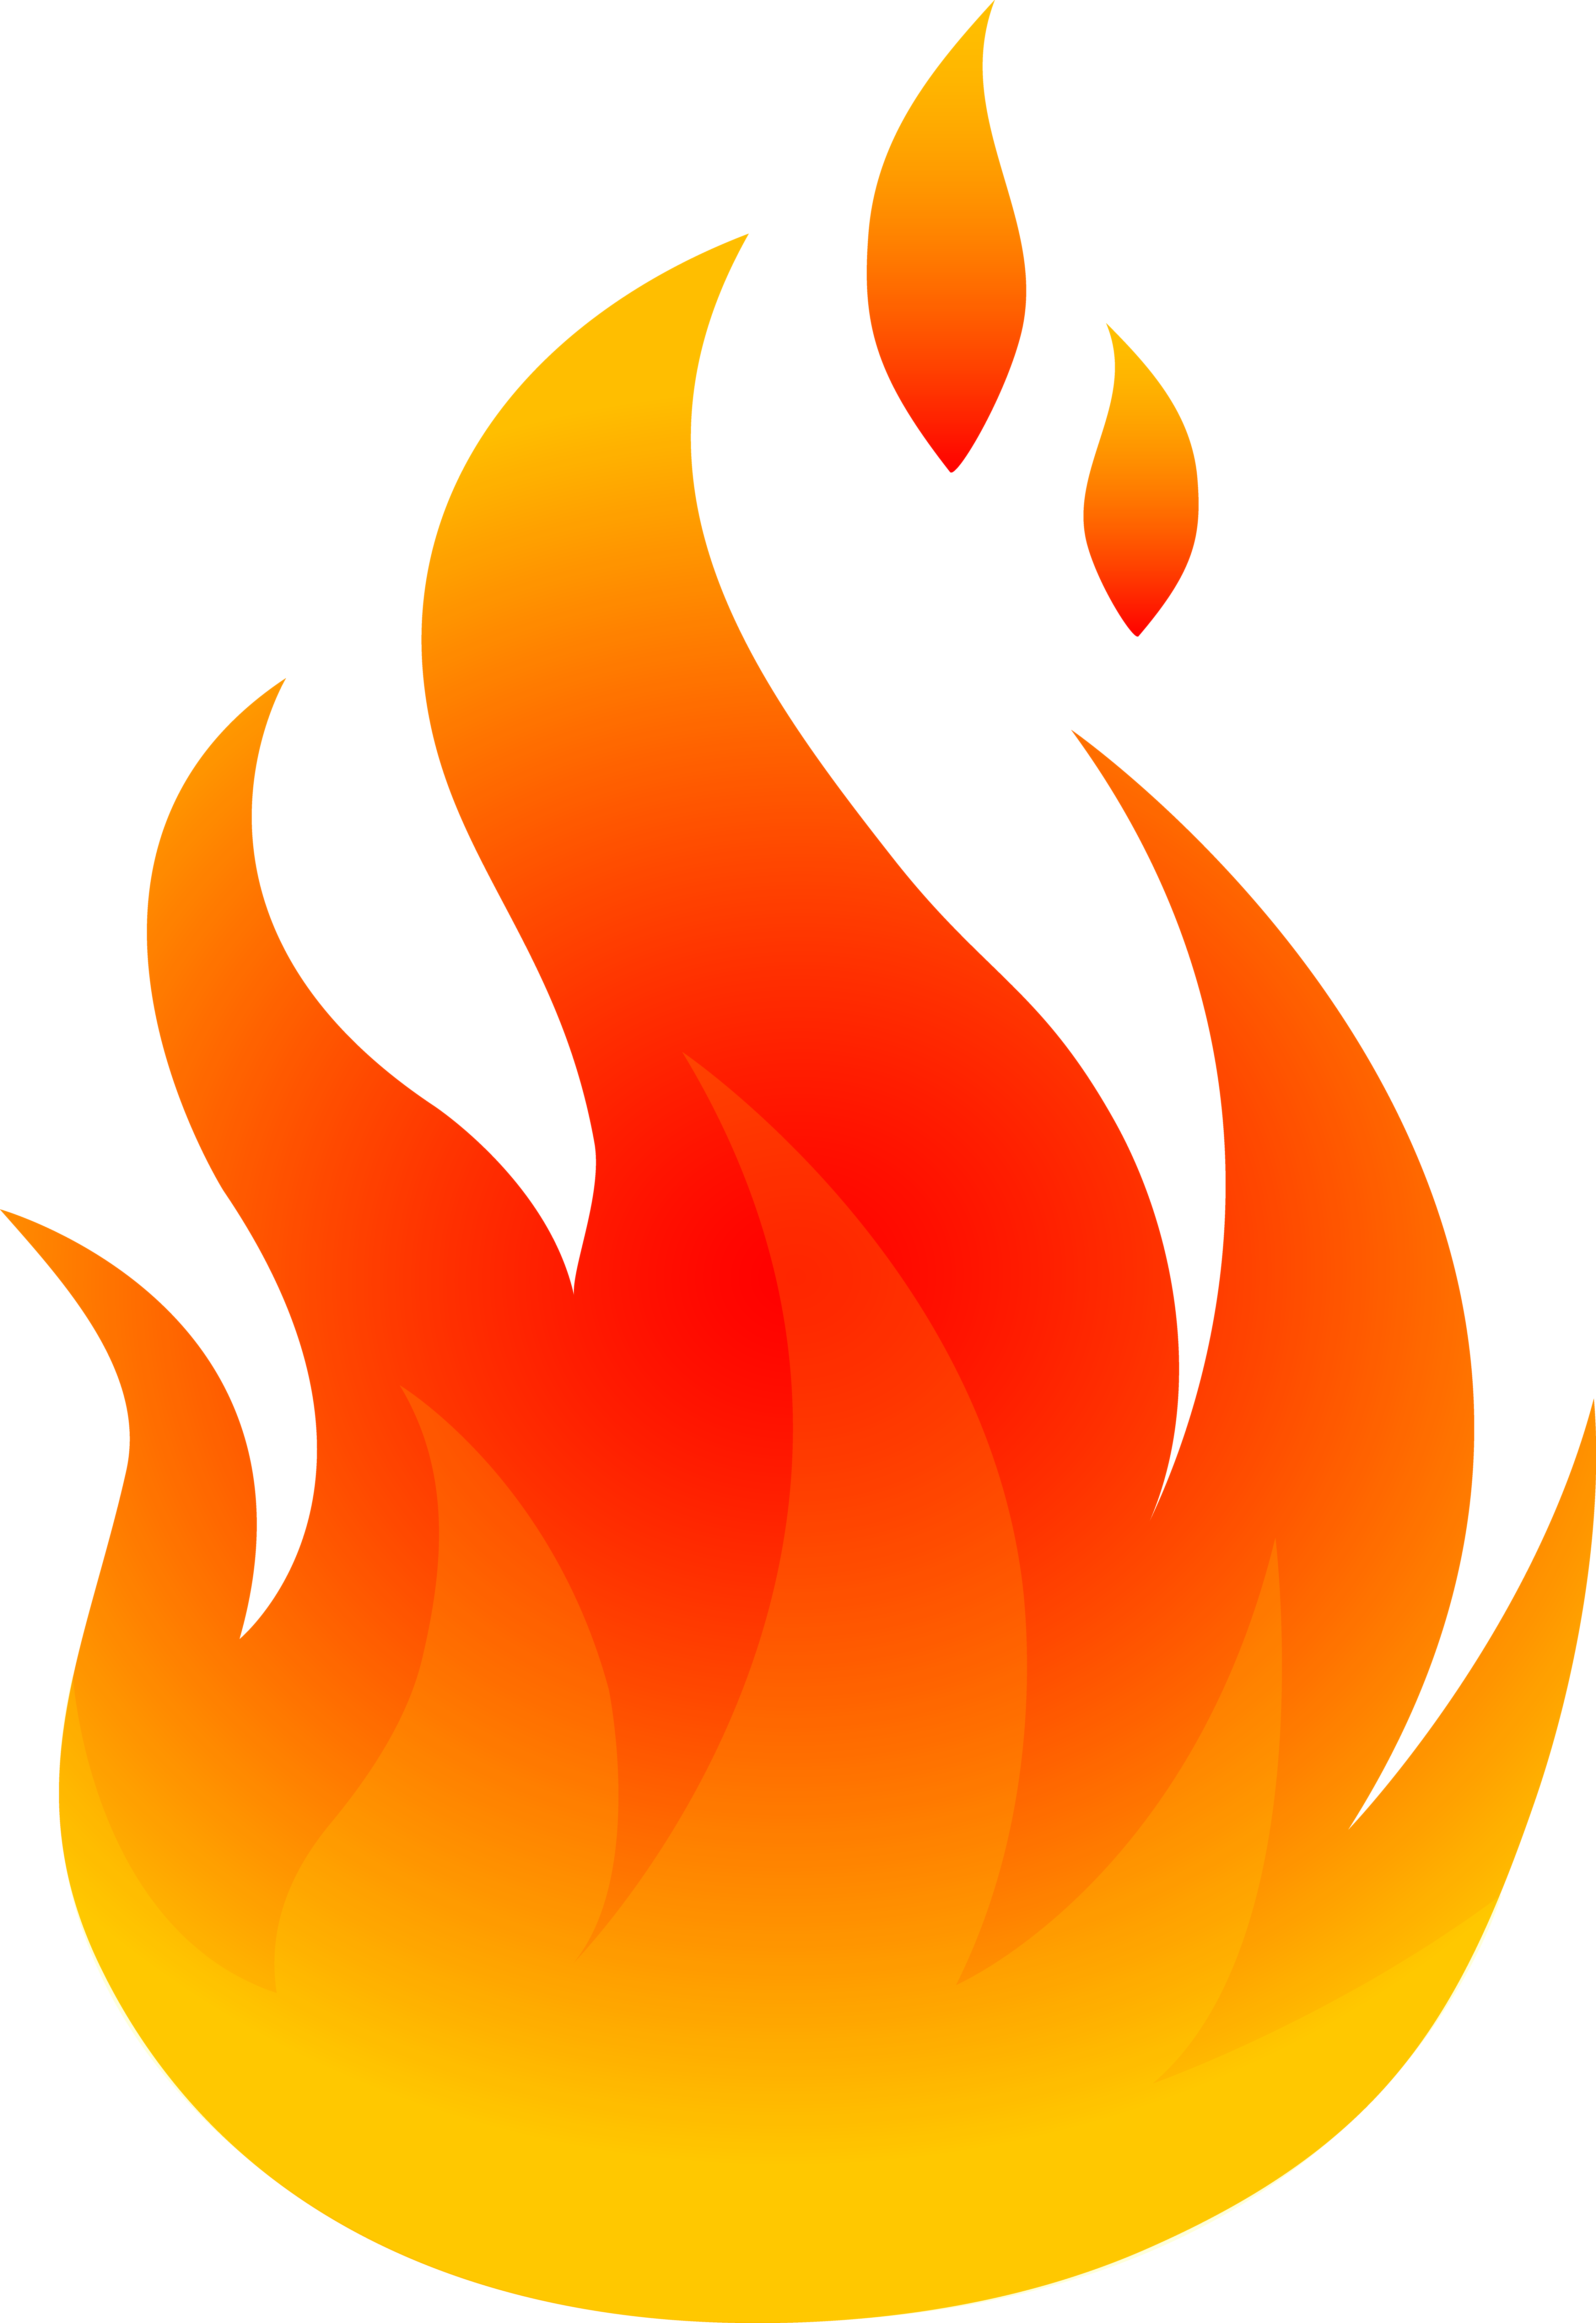 Fire clipart #5, Download drawings